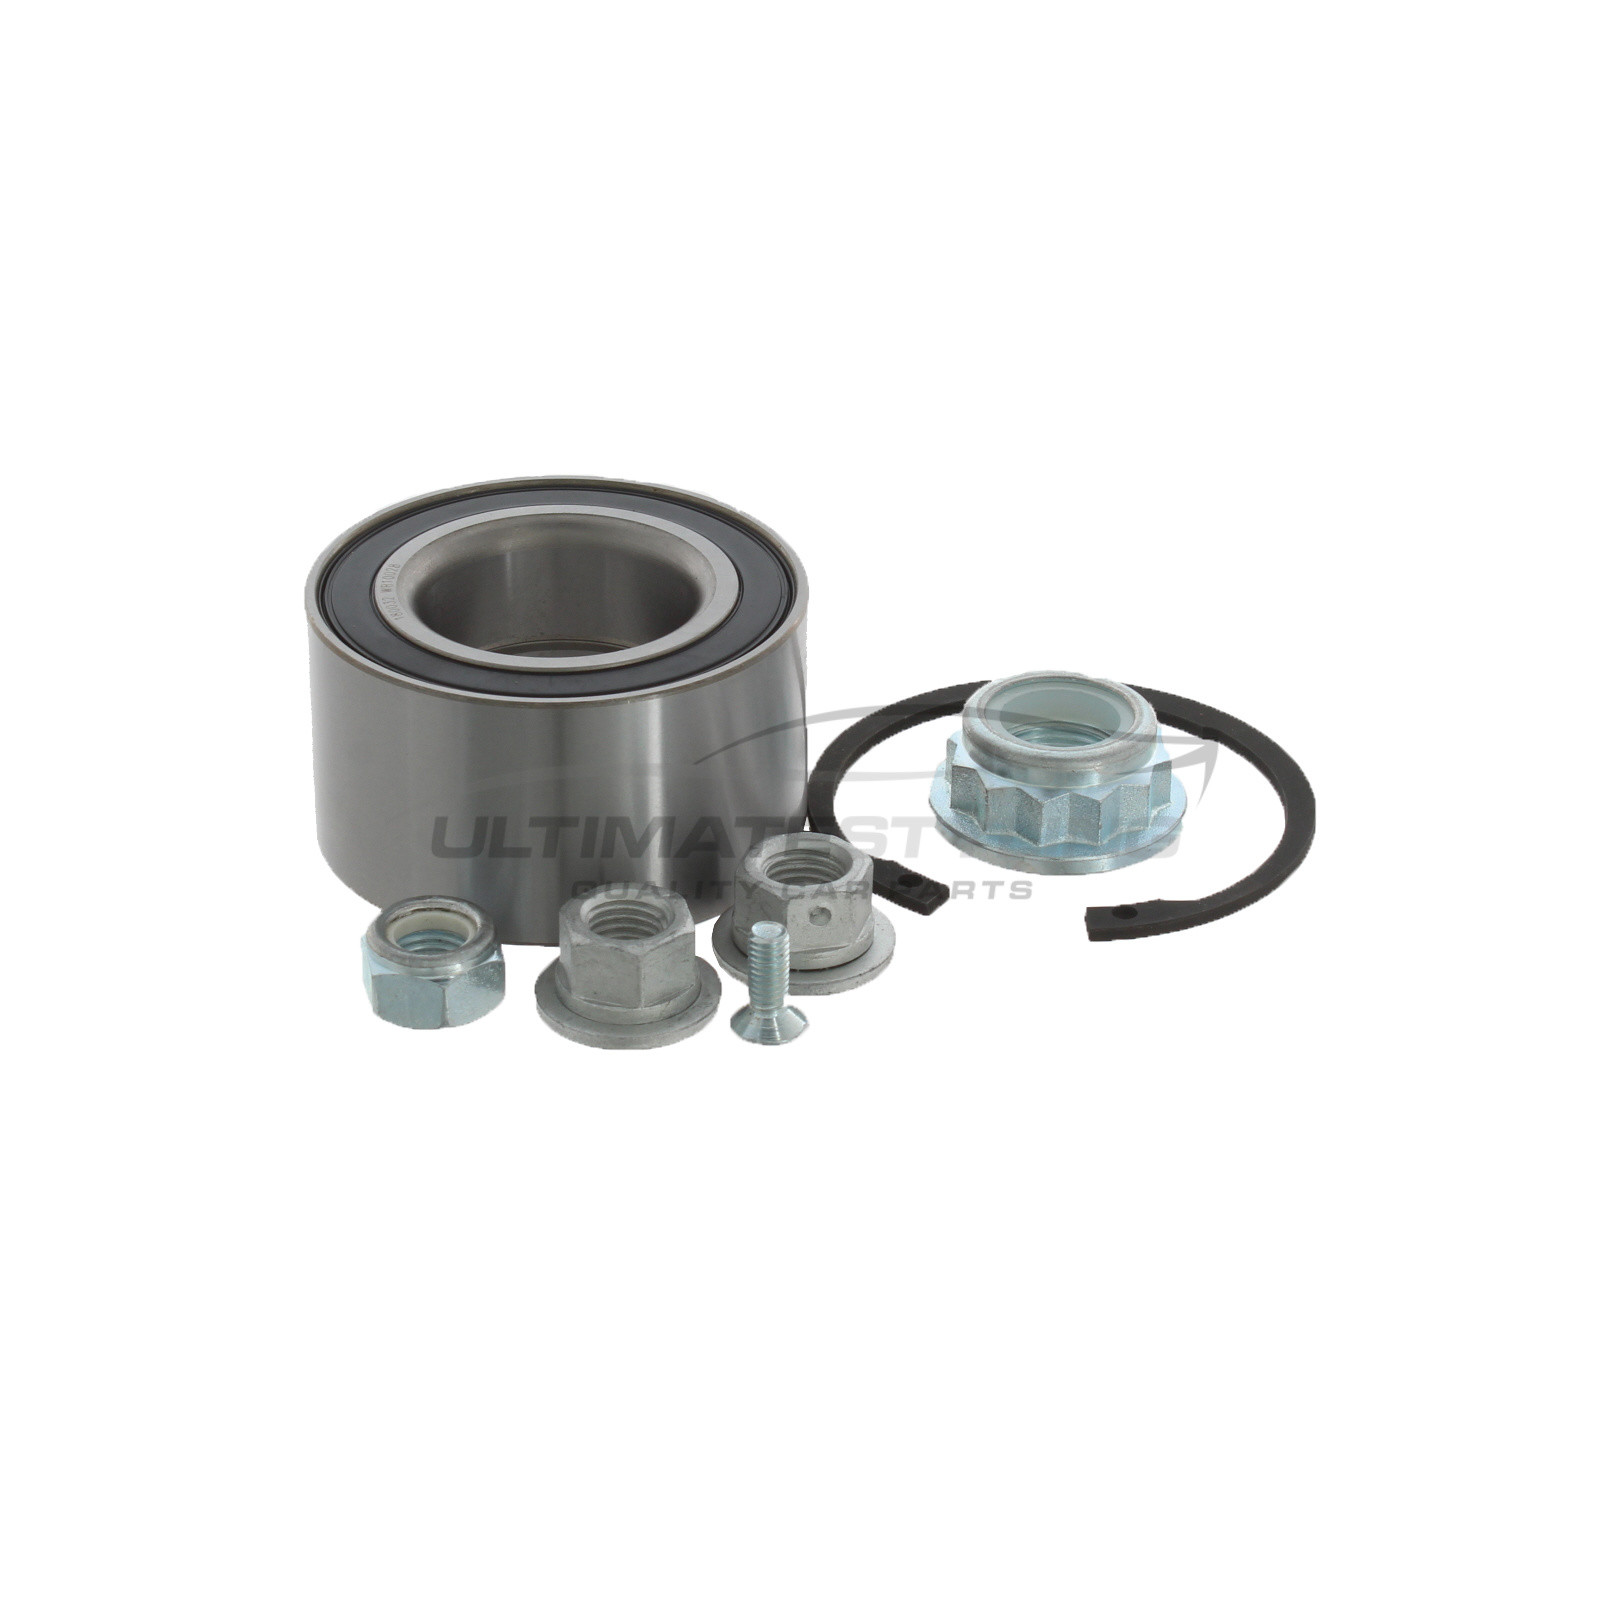 wheel bearing kit front or rear for audi a3 s3 tt seat leon rh ultimatestyling co uk 2014 Audi A3 2014 Audi A3